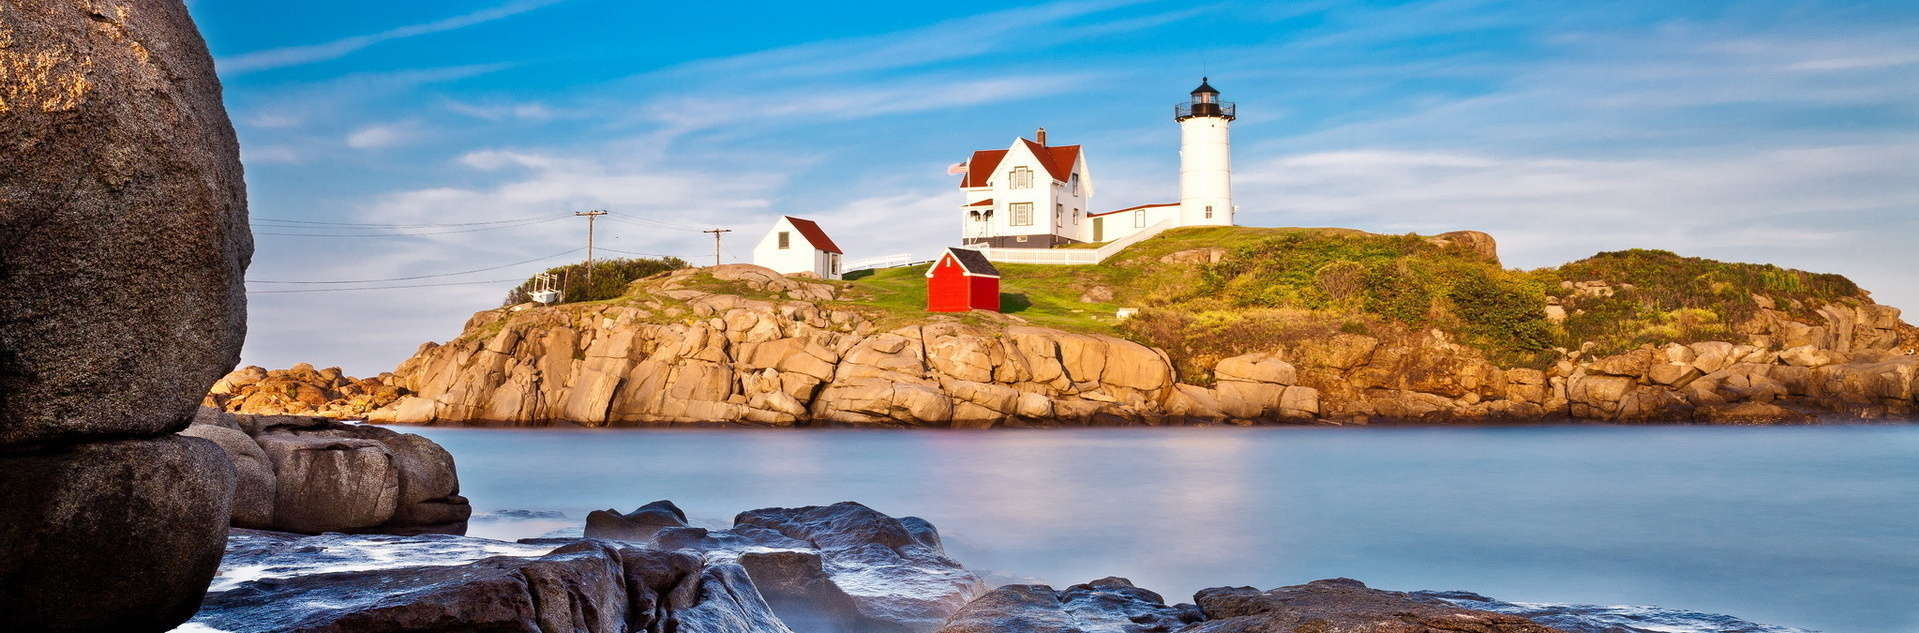 Historic lighthouse along rocky cliff in Maine.